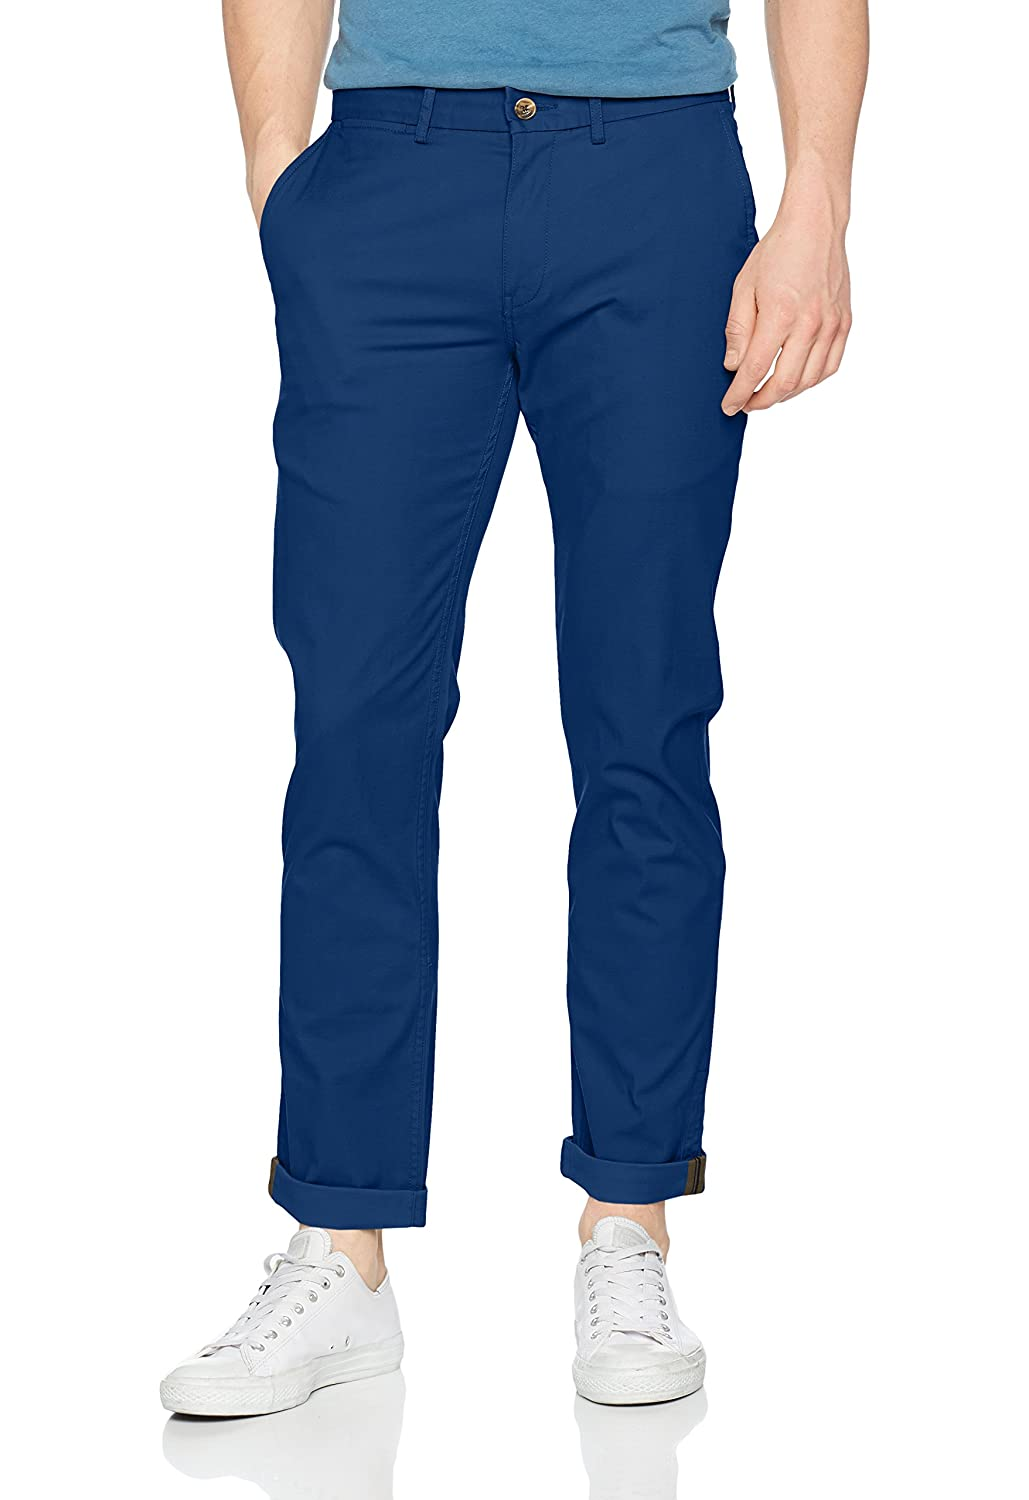 Ben Sherman Slim Stretch Chino, Pantalones para Hombre